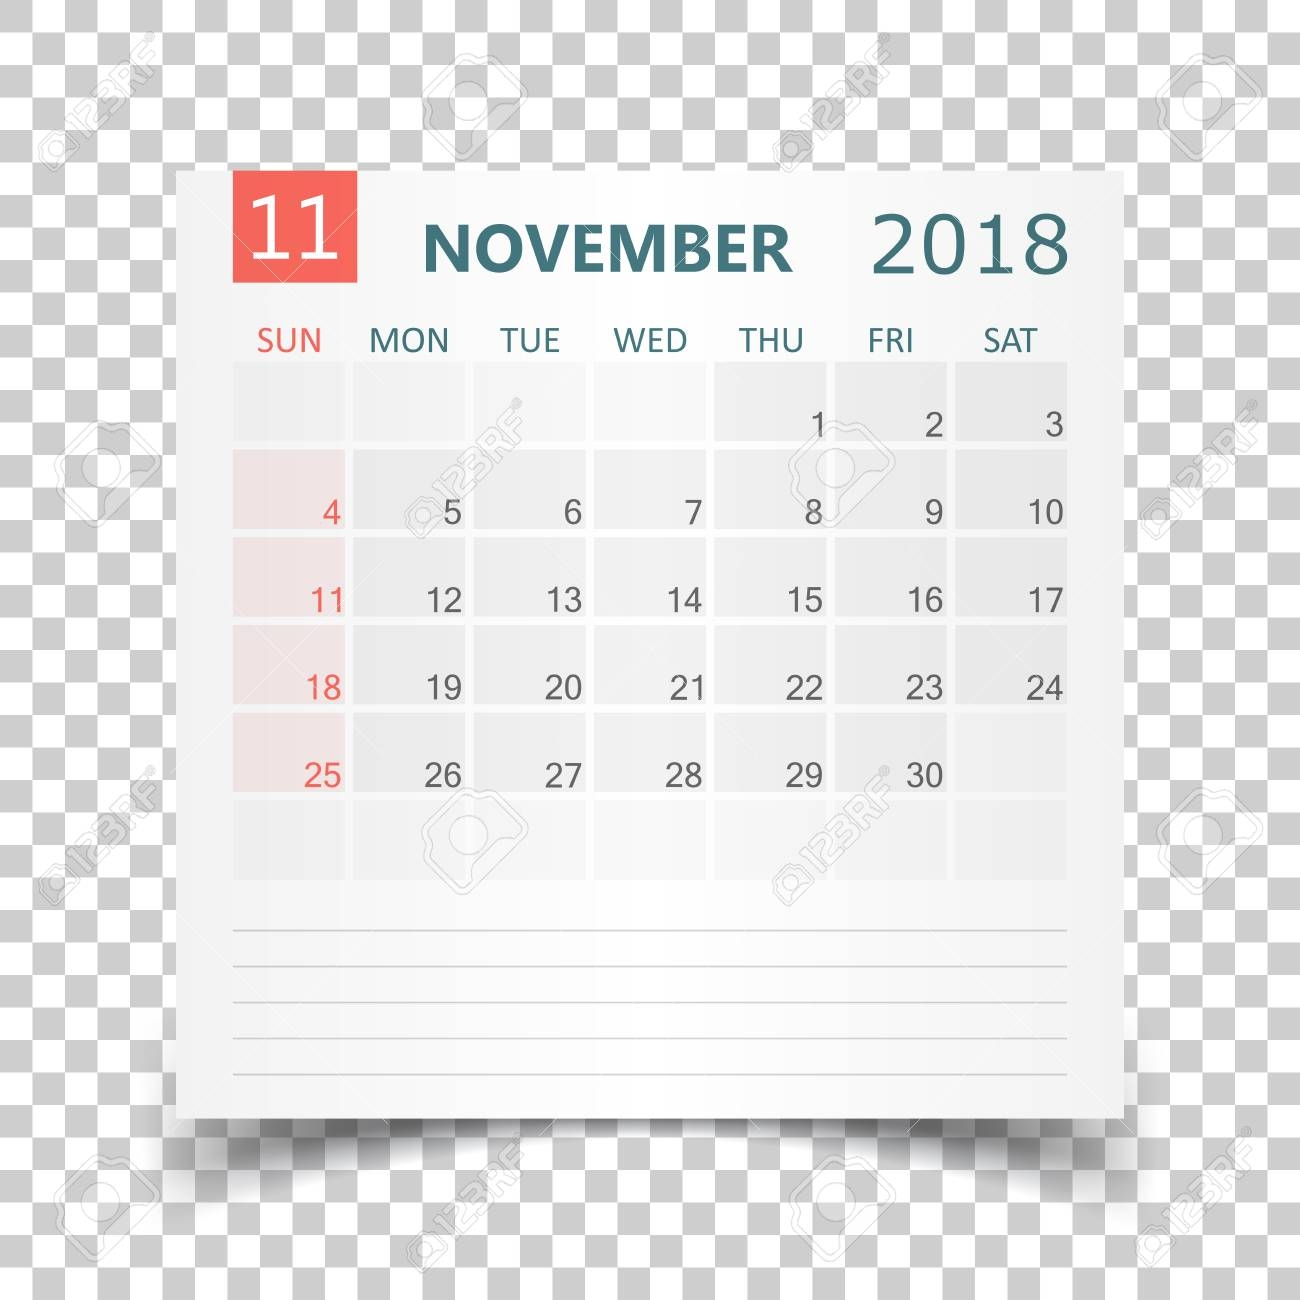 november 2018 calendar calendar sticker design template week::November 2018 Calendar